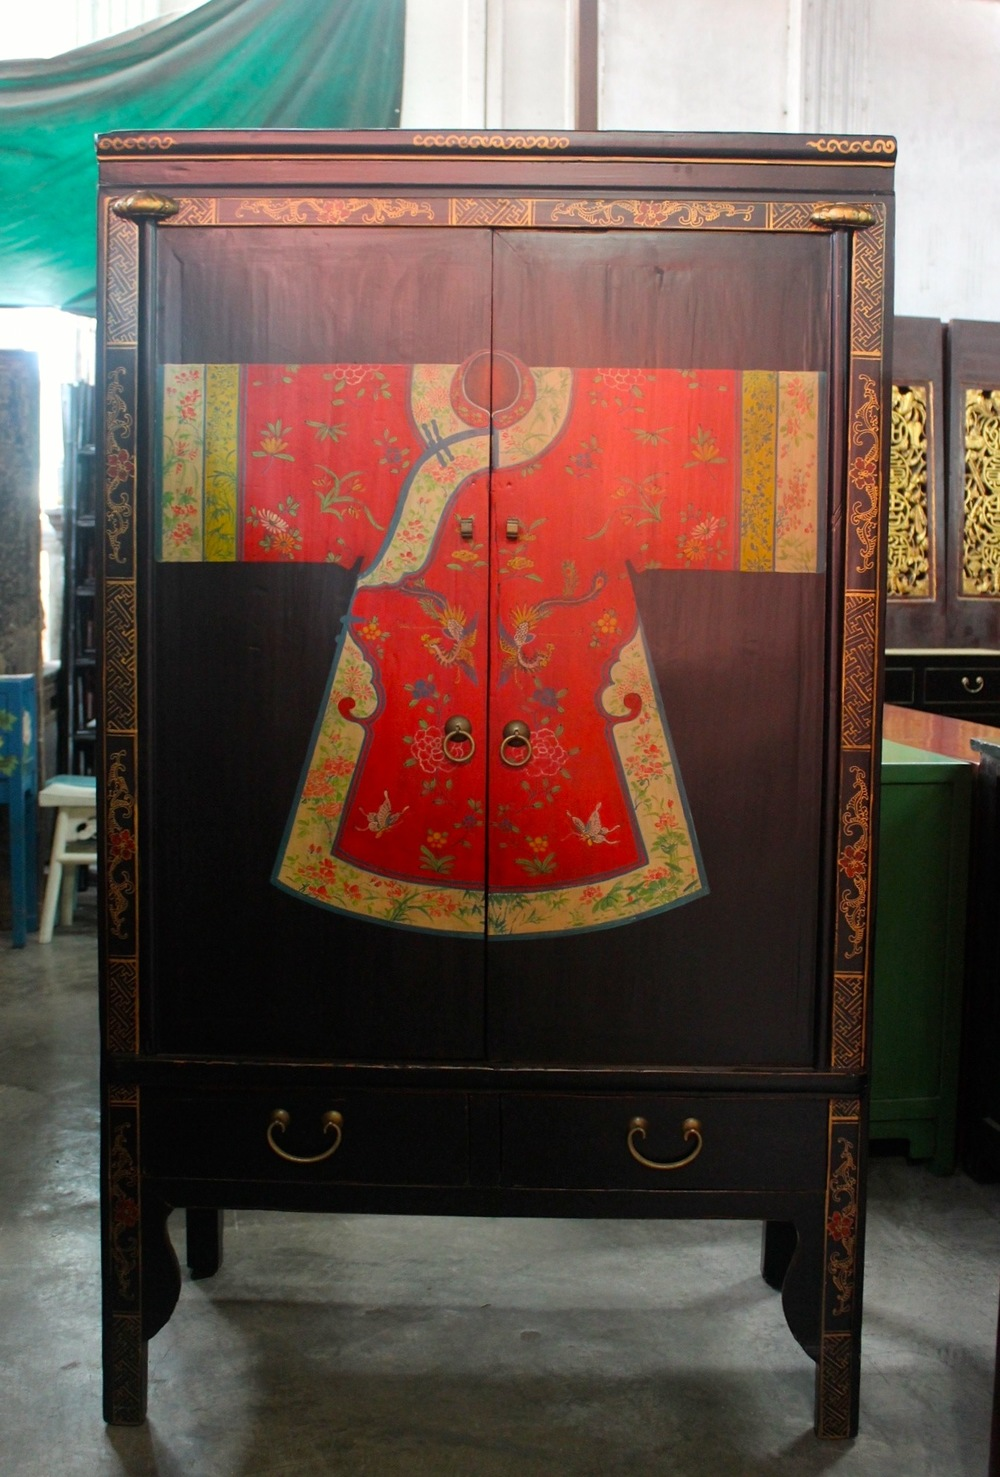 Wooden black cabinet with painting of a robe. Now on sale at S$800.00. SOLD